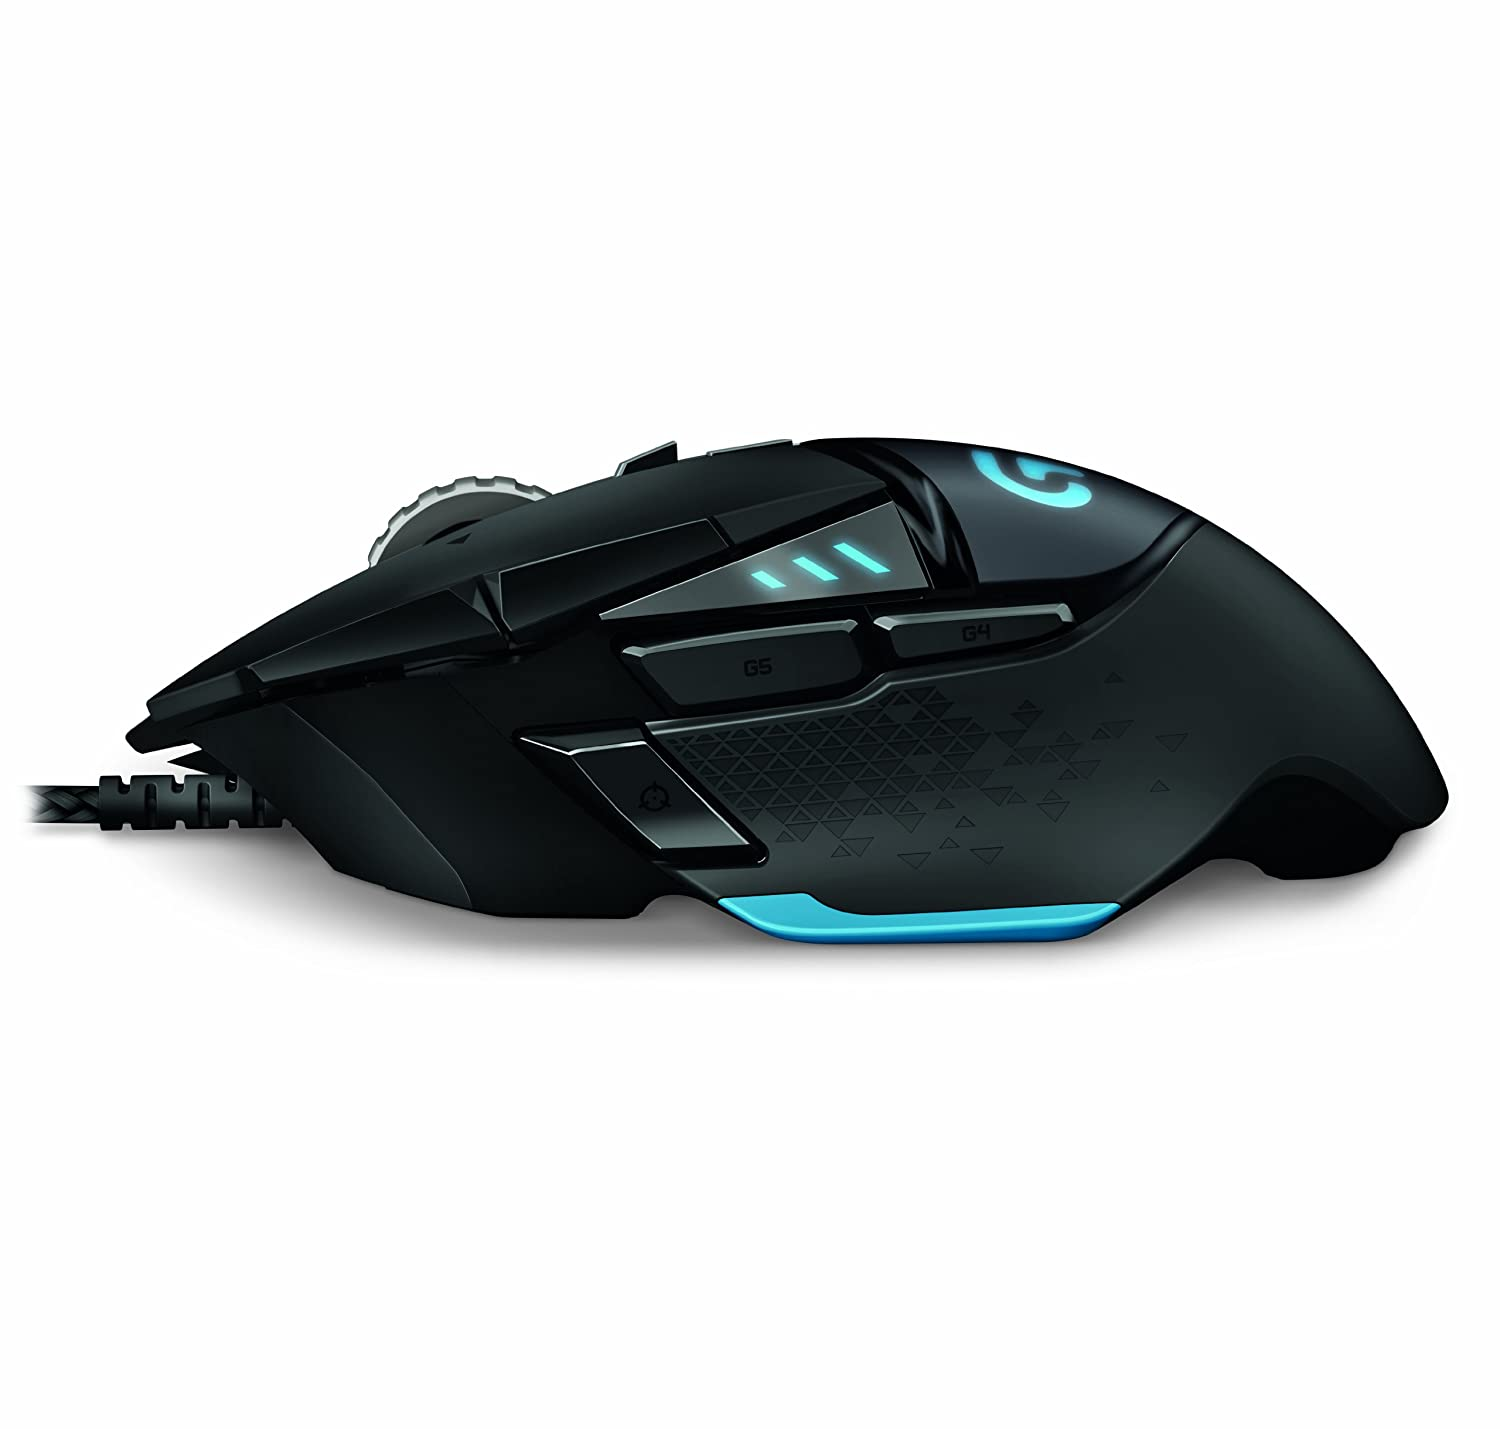 Logitech G502 Proteus Core Tunable Gaming Mouse (Previous model)